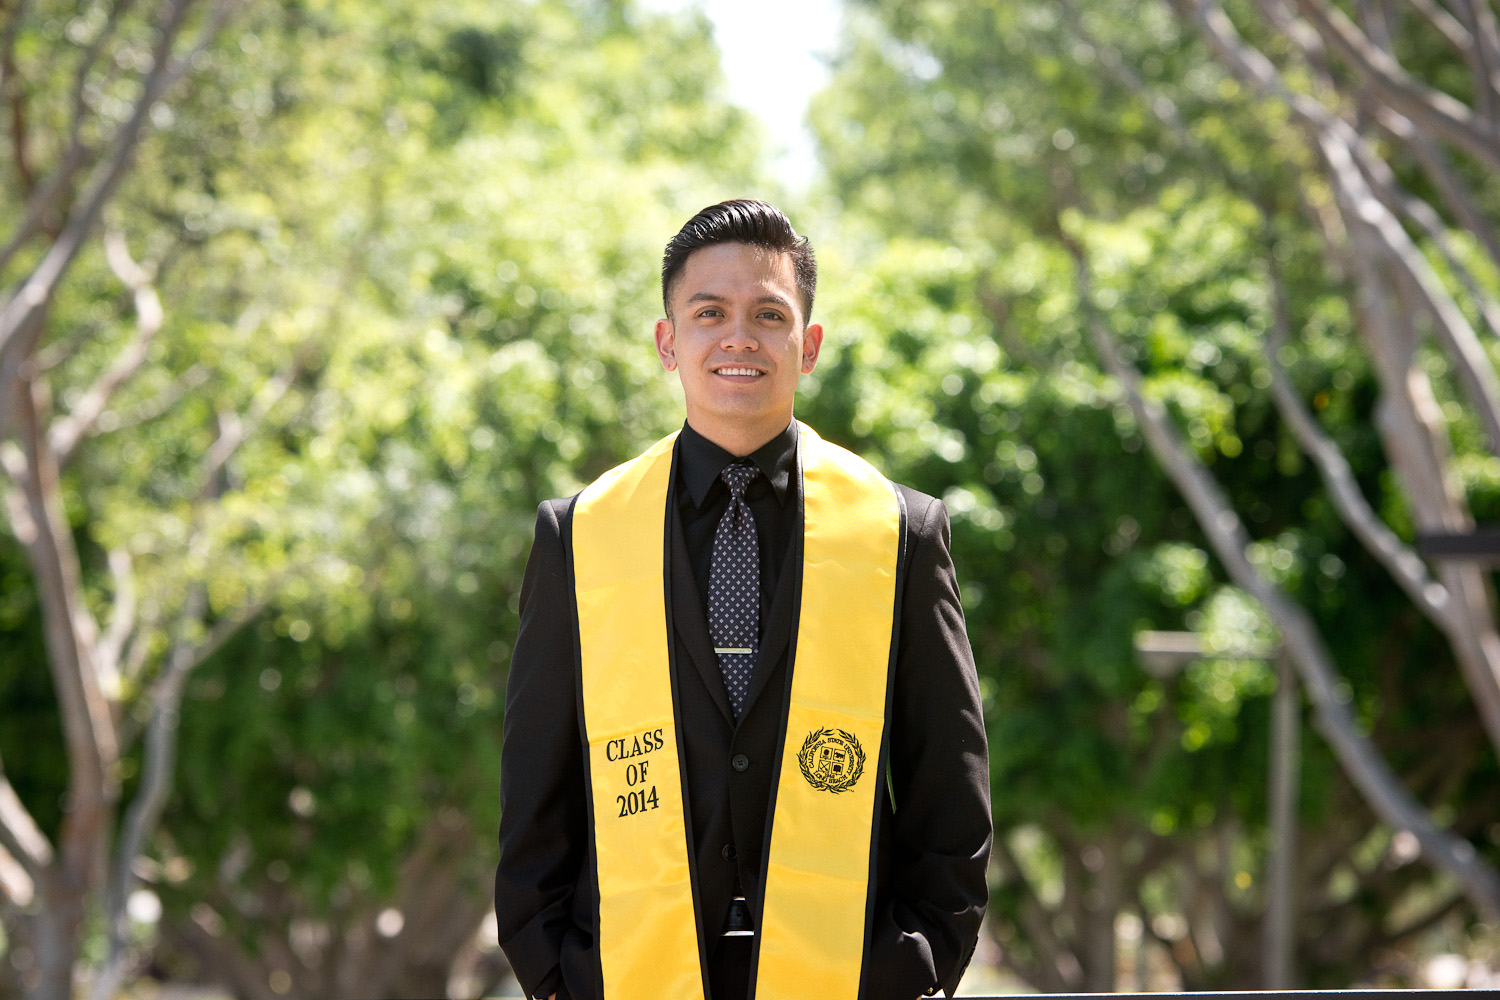 Bryan-Miraflor-Photography-Tejero-Grad-Portraits-Long-Beach-CSULB-0018.jpg